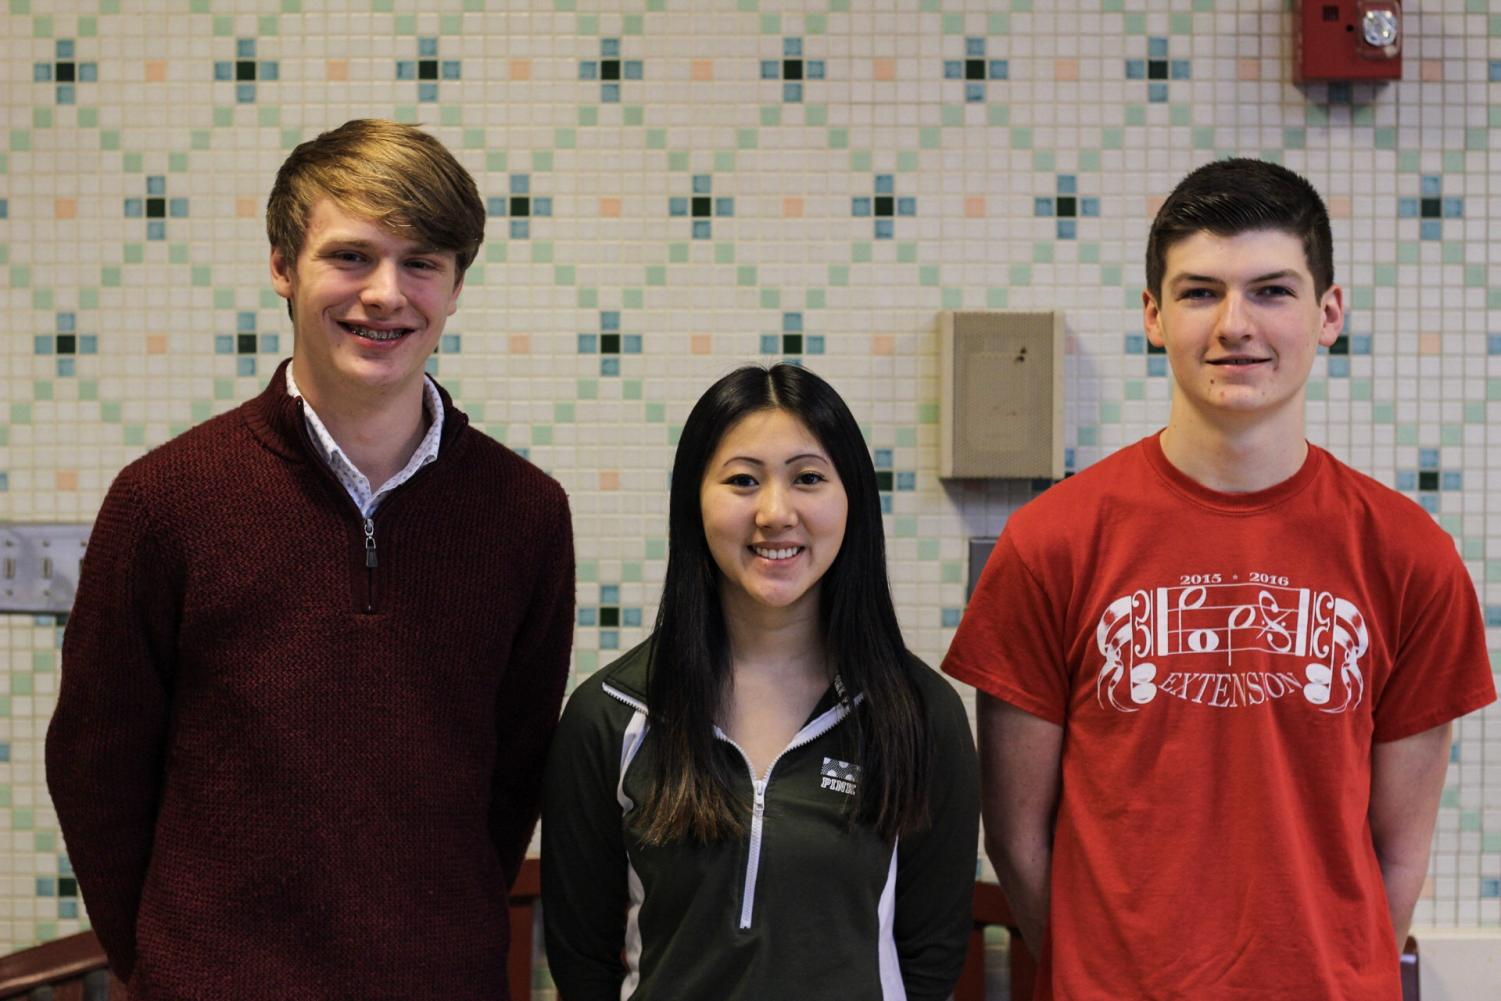 Brent McNeel, Molly Harris and Ethan White